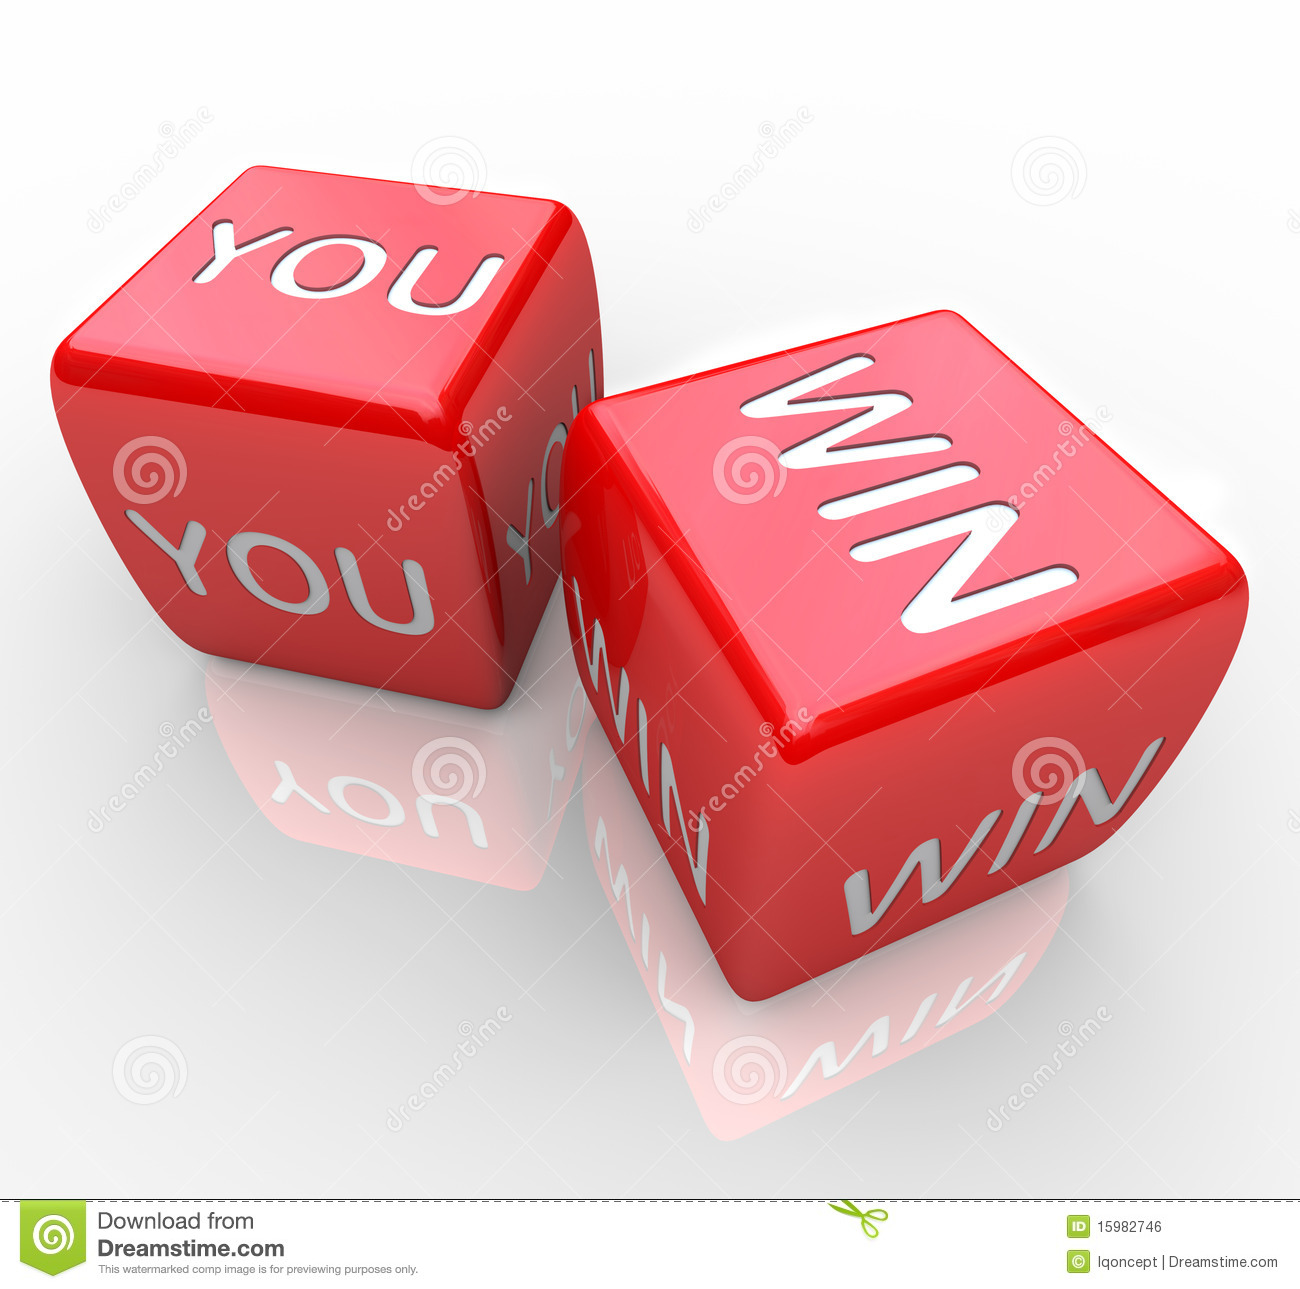 You Win Words On Red Dice Royalty Free Stock Image Image 15982746